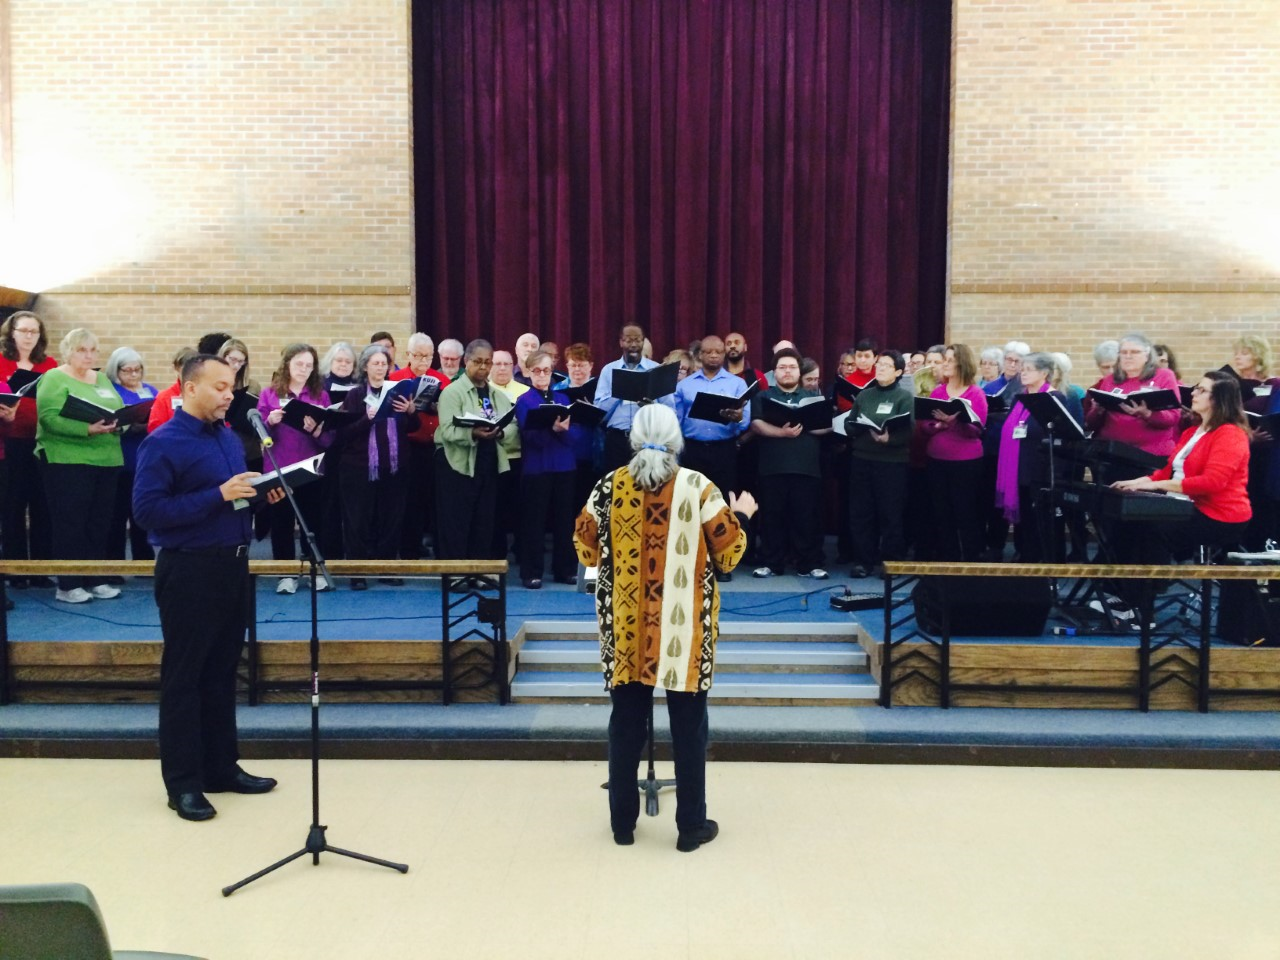 Choir Celebration for Martin Luther King Jr Day